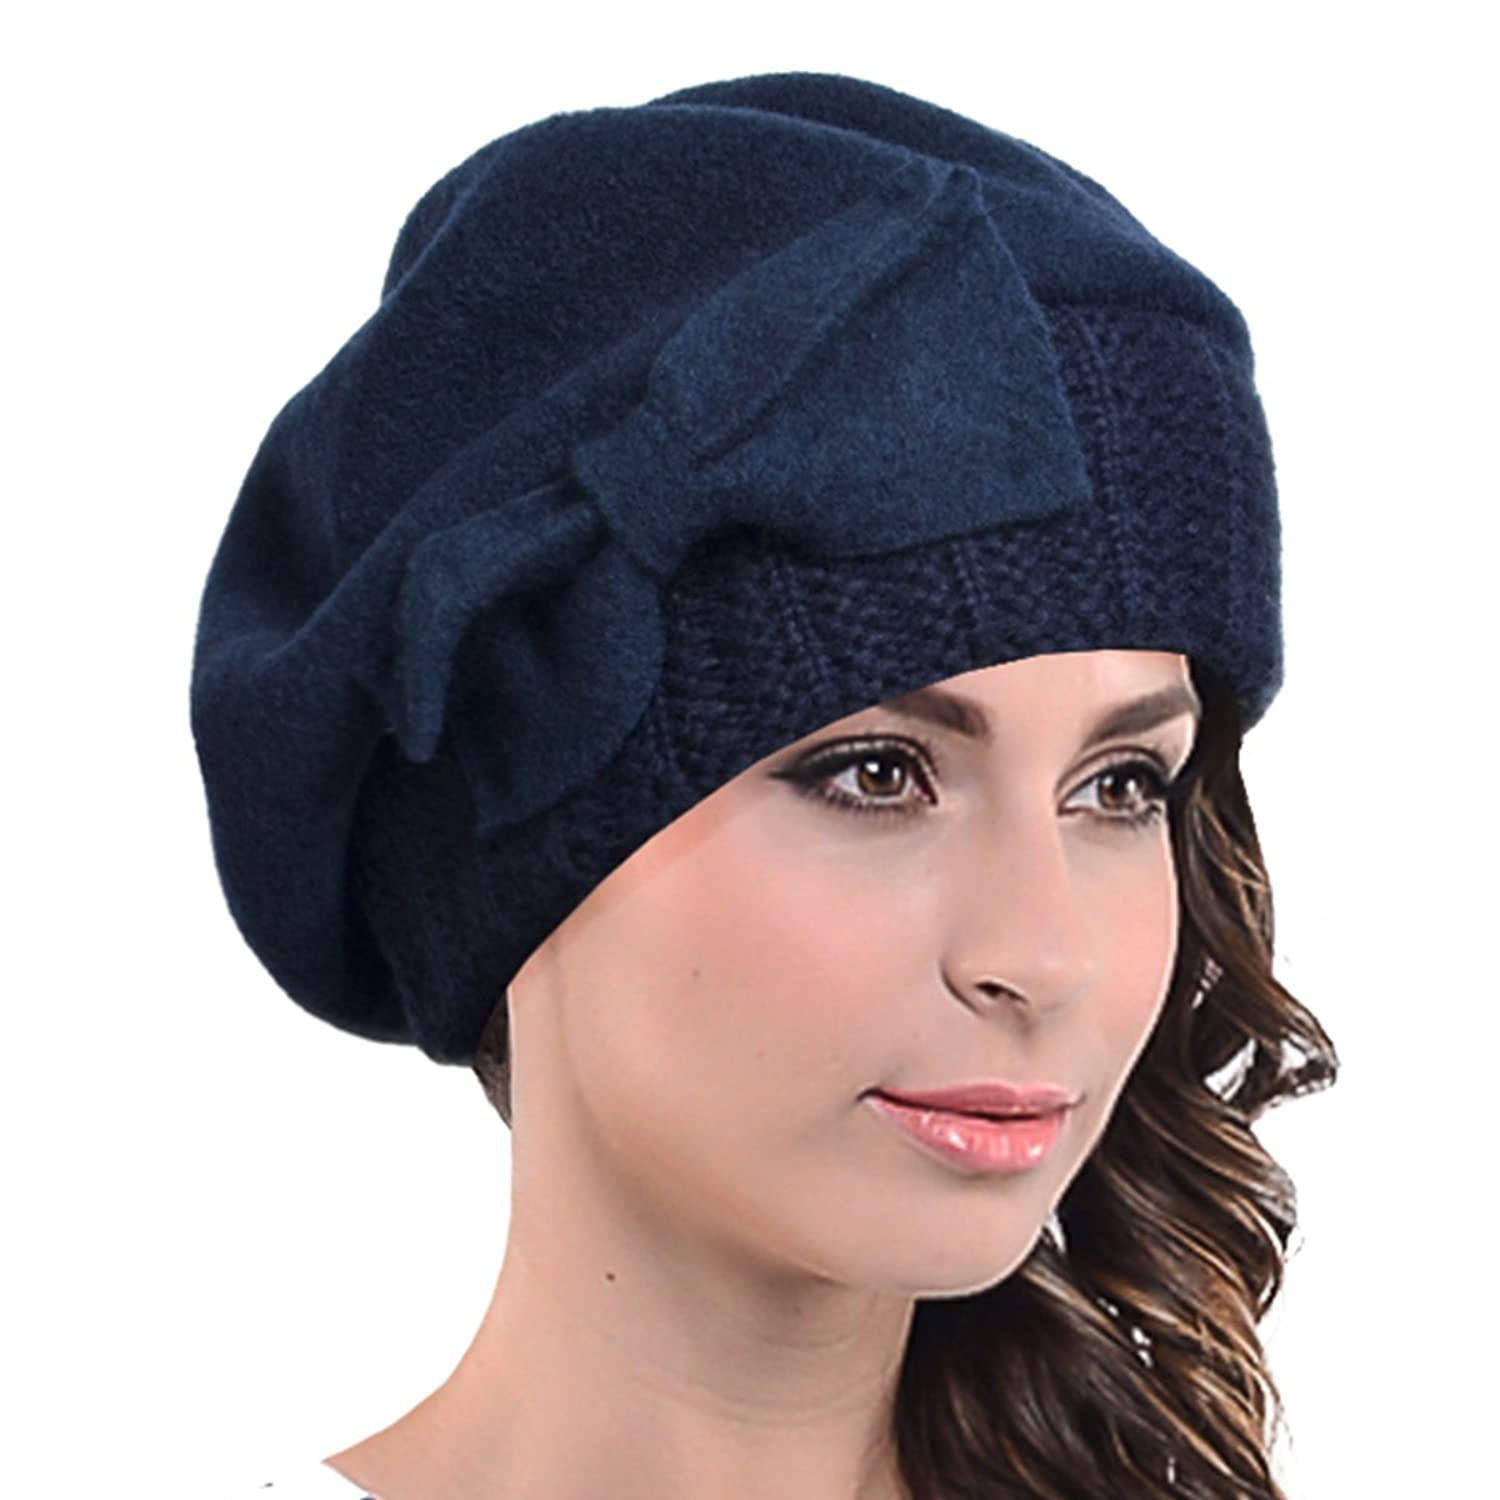 1930s Style Hats | 30s Ladies Hats Lady French Beret Wool Beret Chic Beanie Winter Hat Jf-br034 $21.99 AT vintagedancer.com